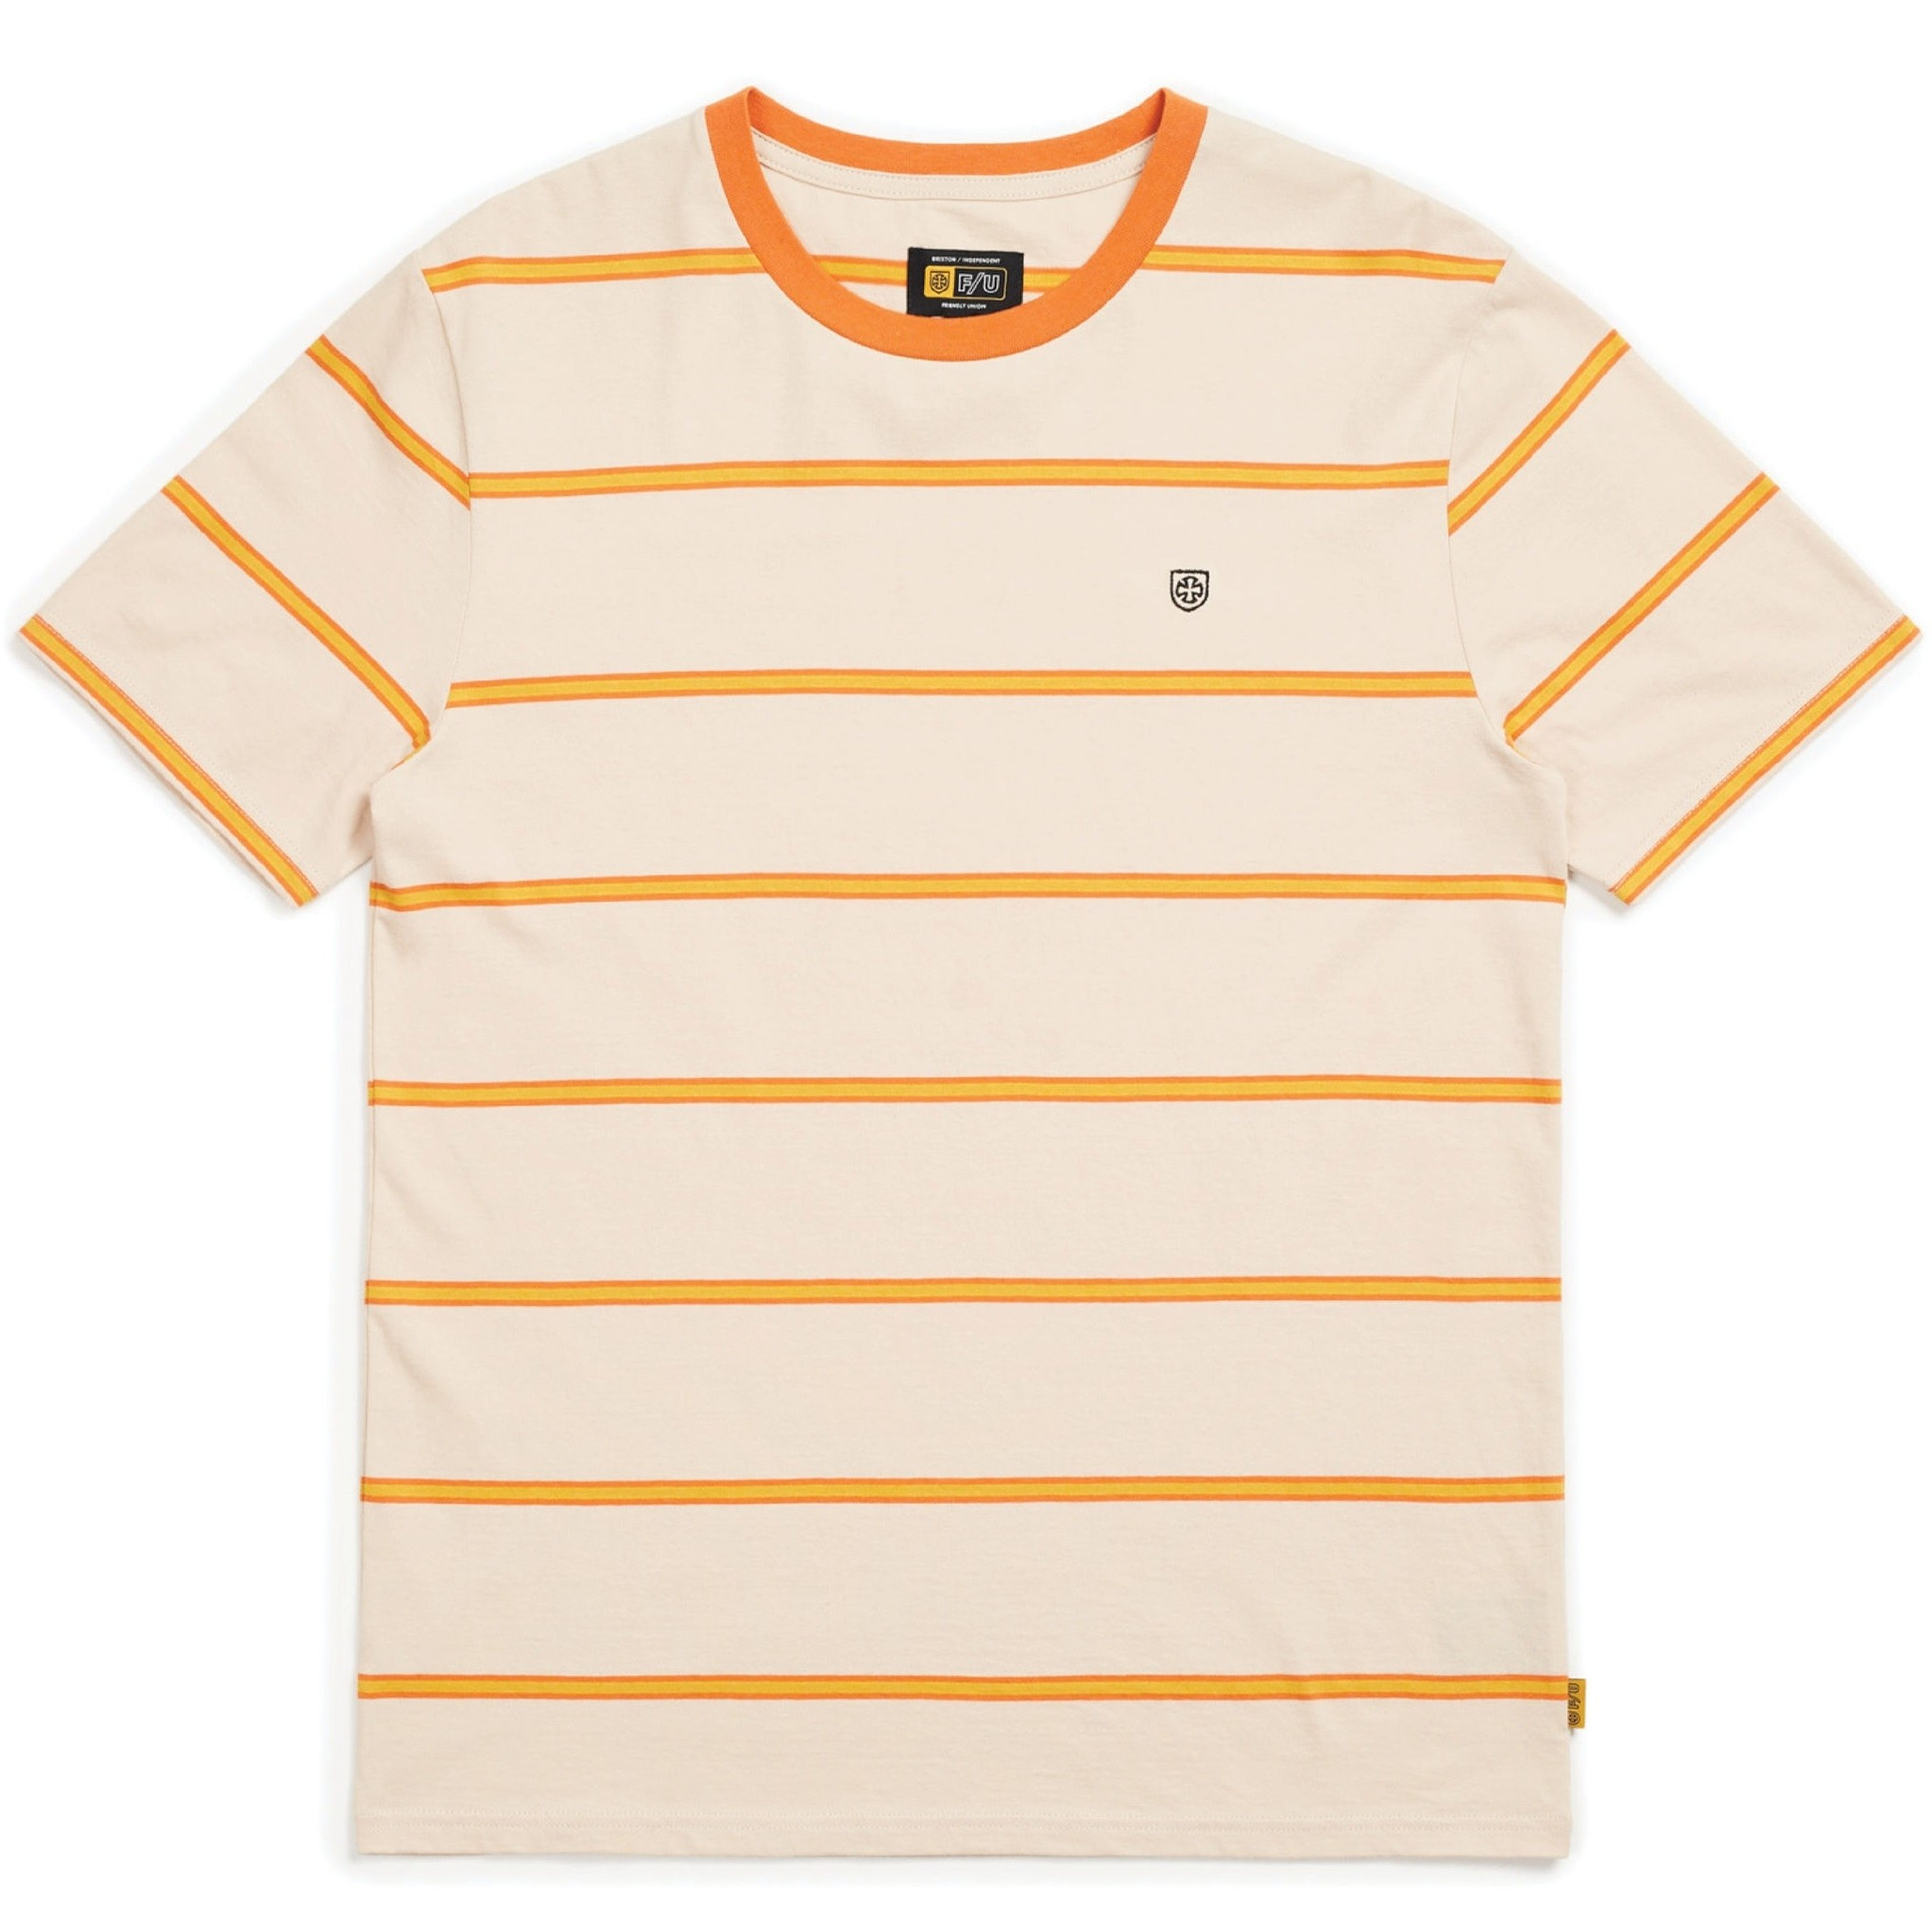 Deputy S/S Knit (Orange/Tan)